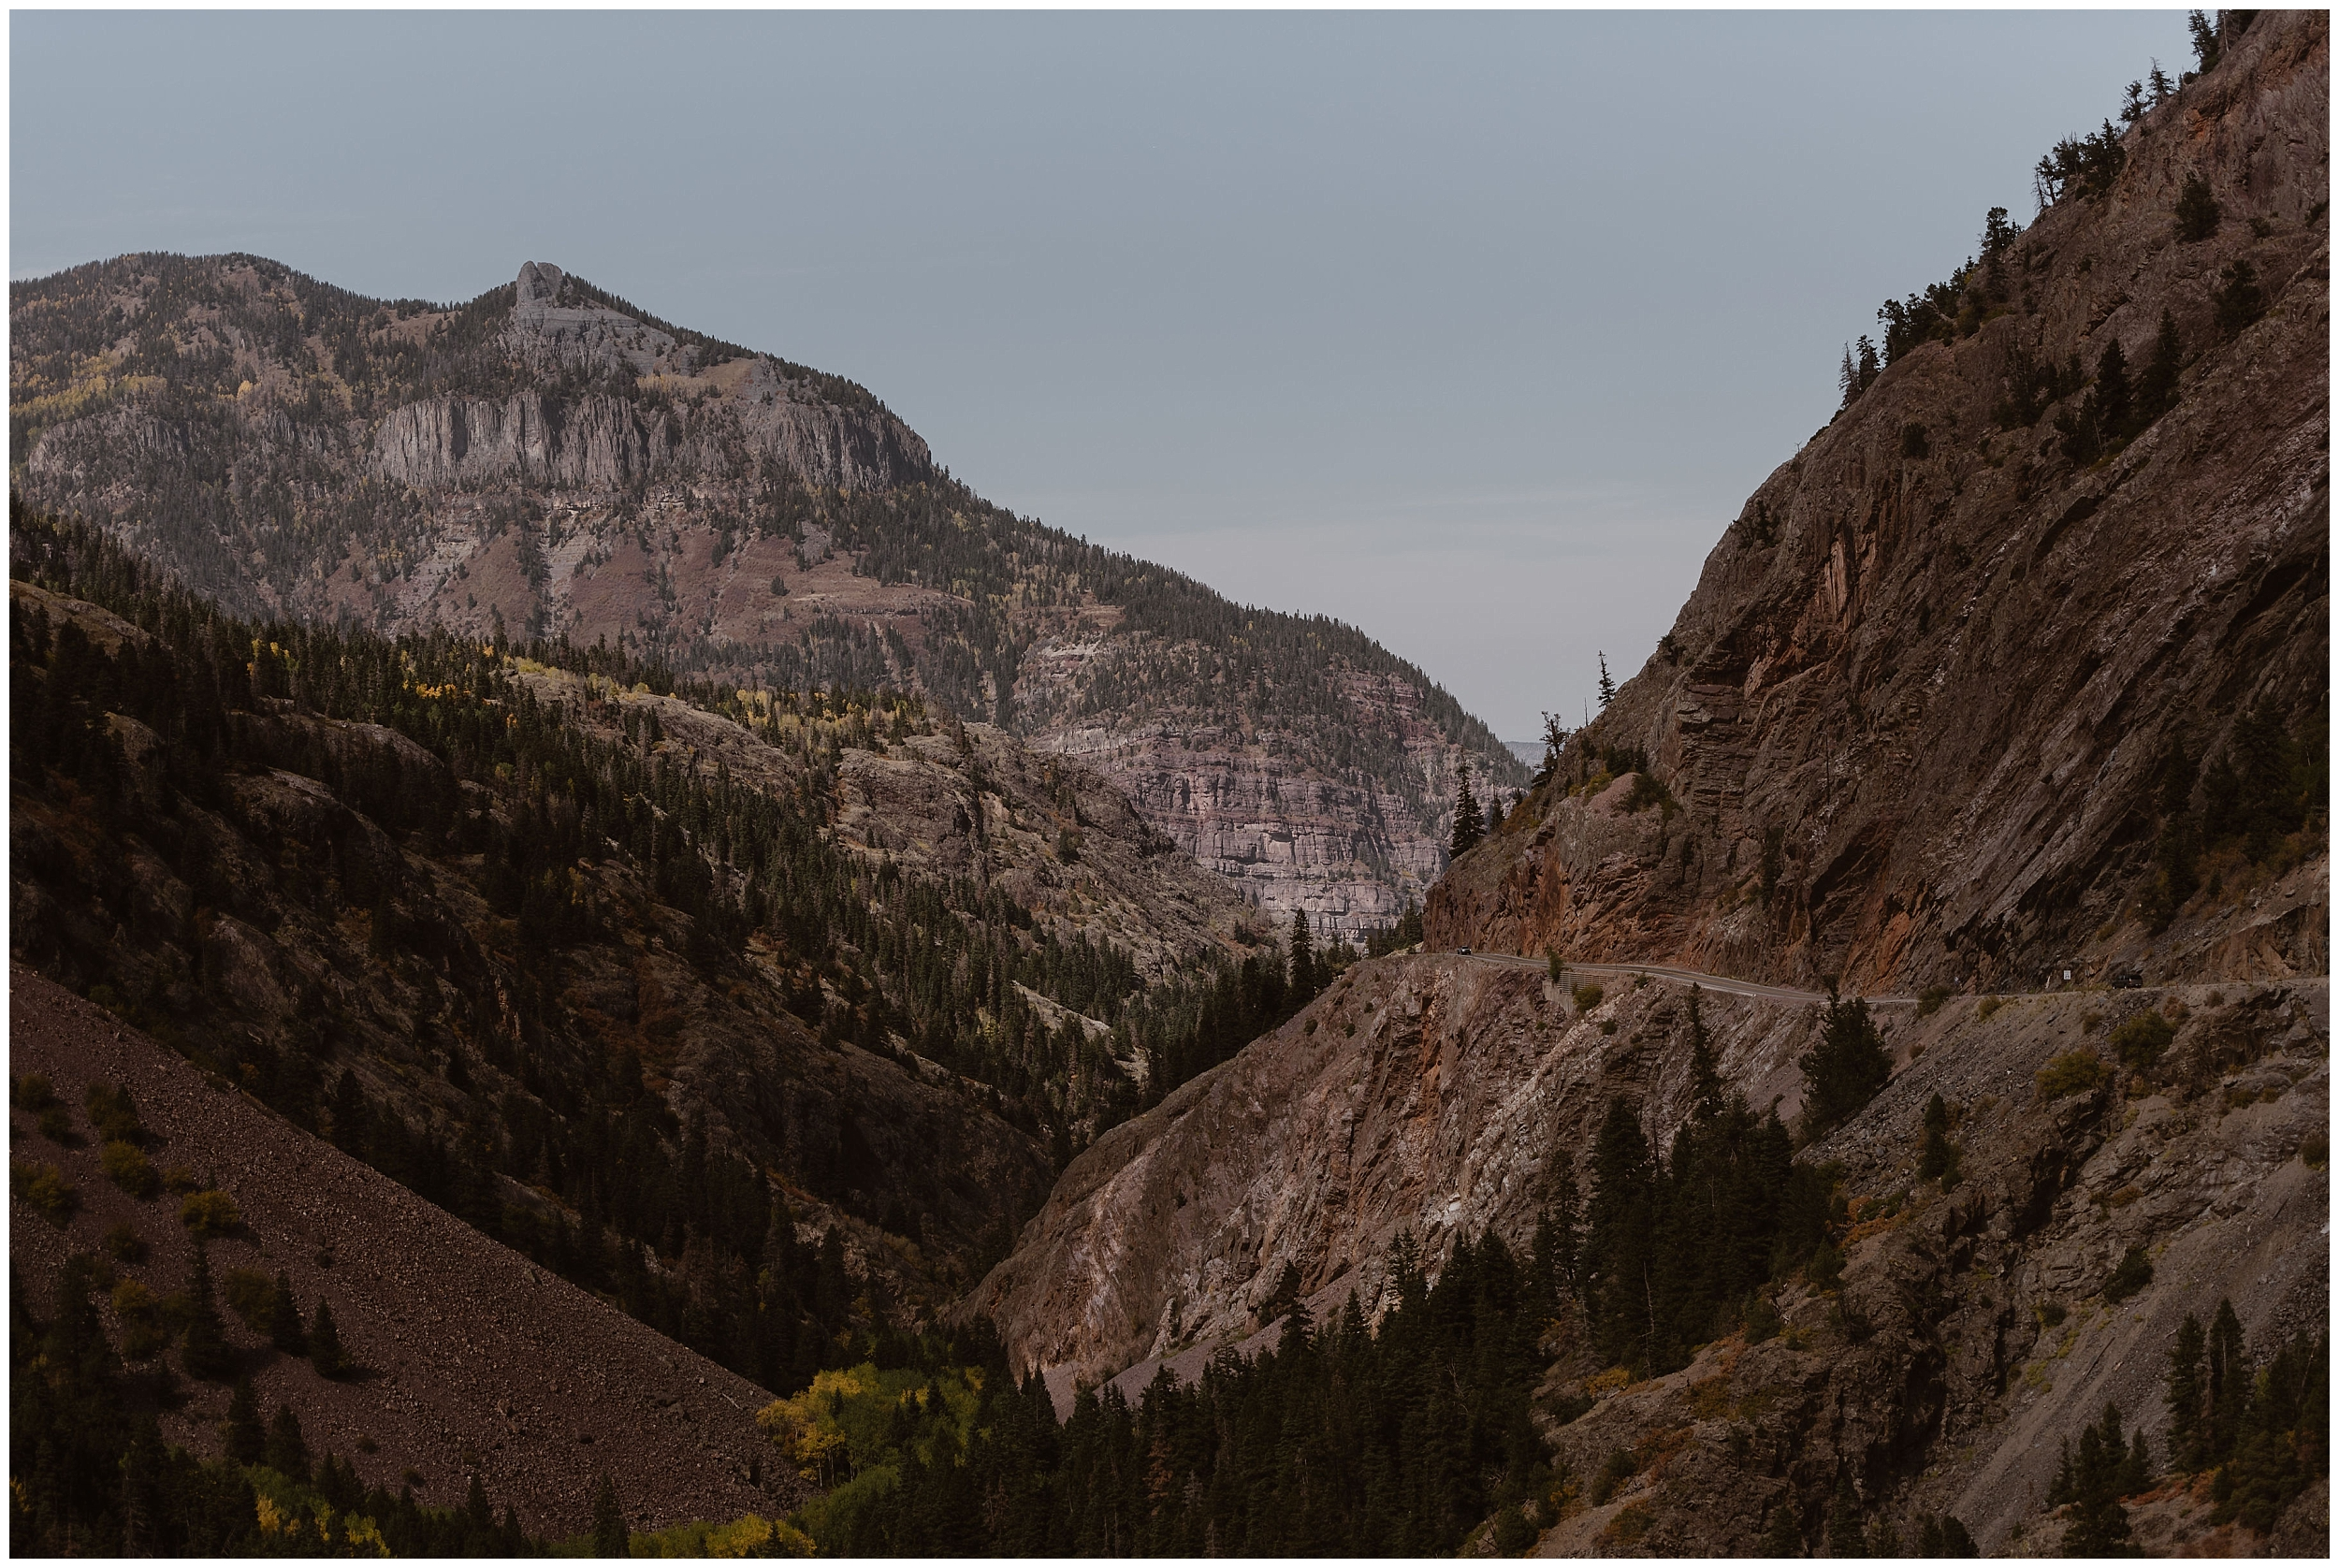 In this elopement photo captured by Adventure Instead, an elopement photographer, the rocky red mountains of Ouray, Colorado are seen. A road is carved into the side of the mountain, a perfect place for a 4x4 wedding.